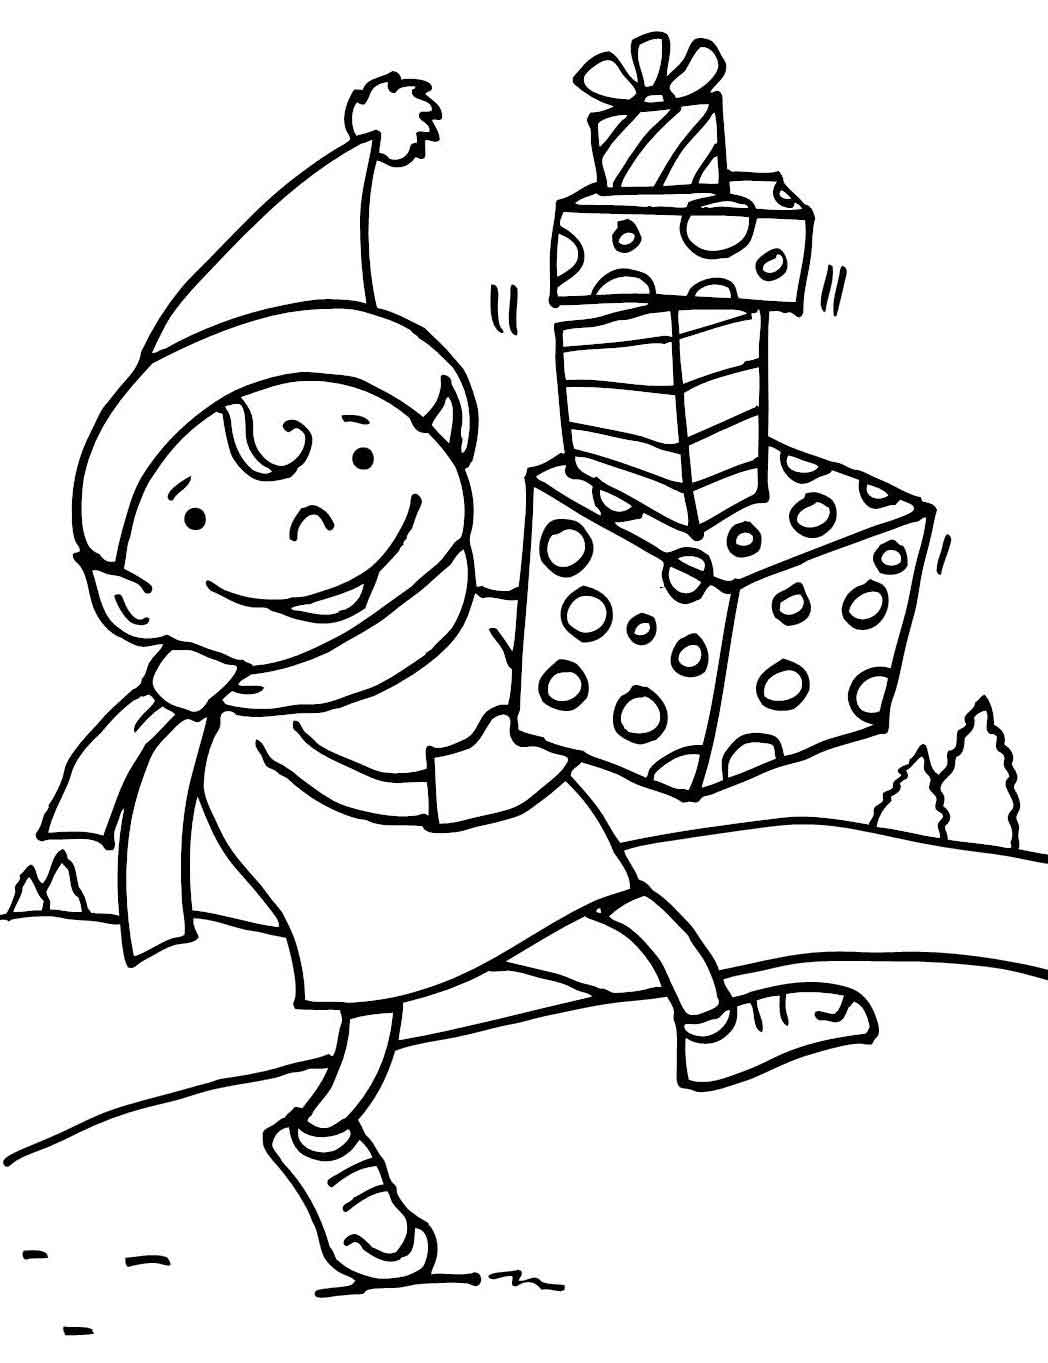 elf coloring sheet elf coloring pages free download on clipartmag coloring elf sheet